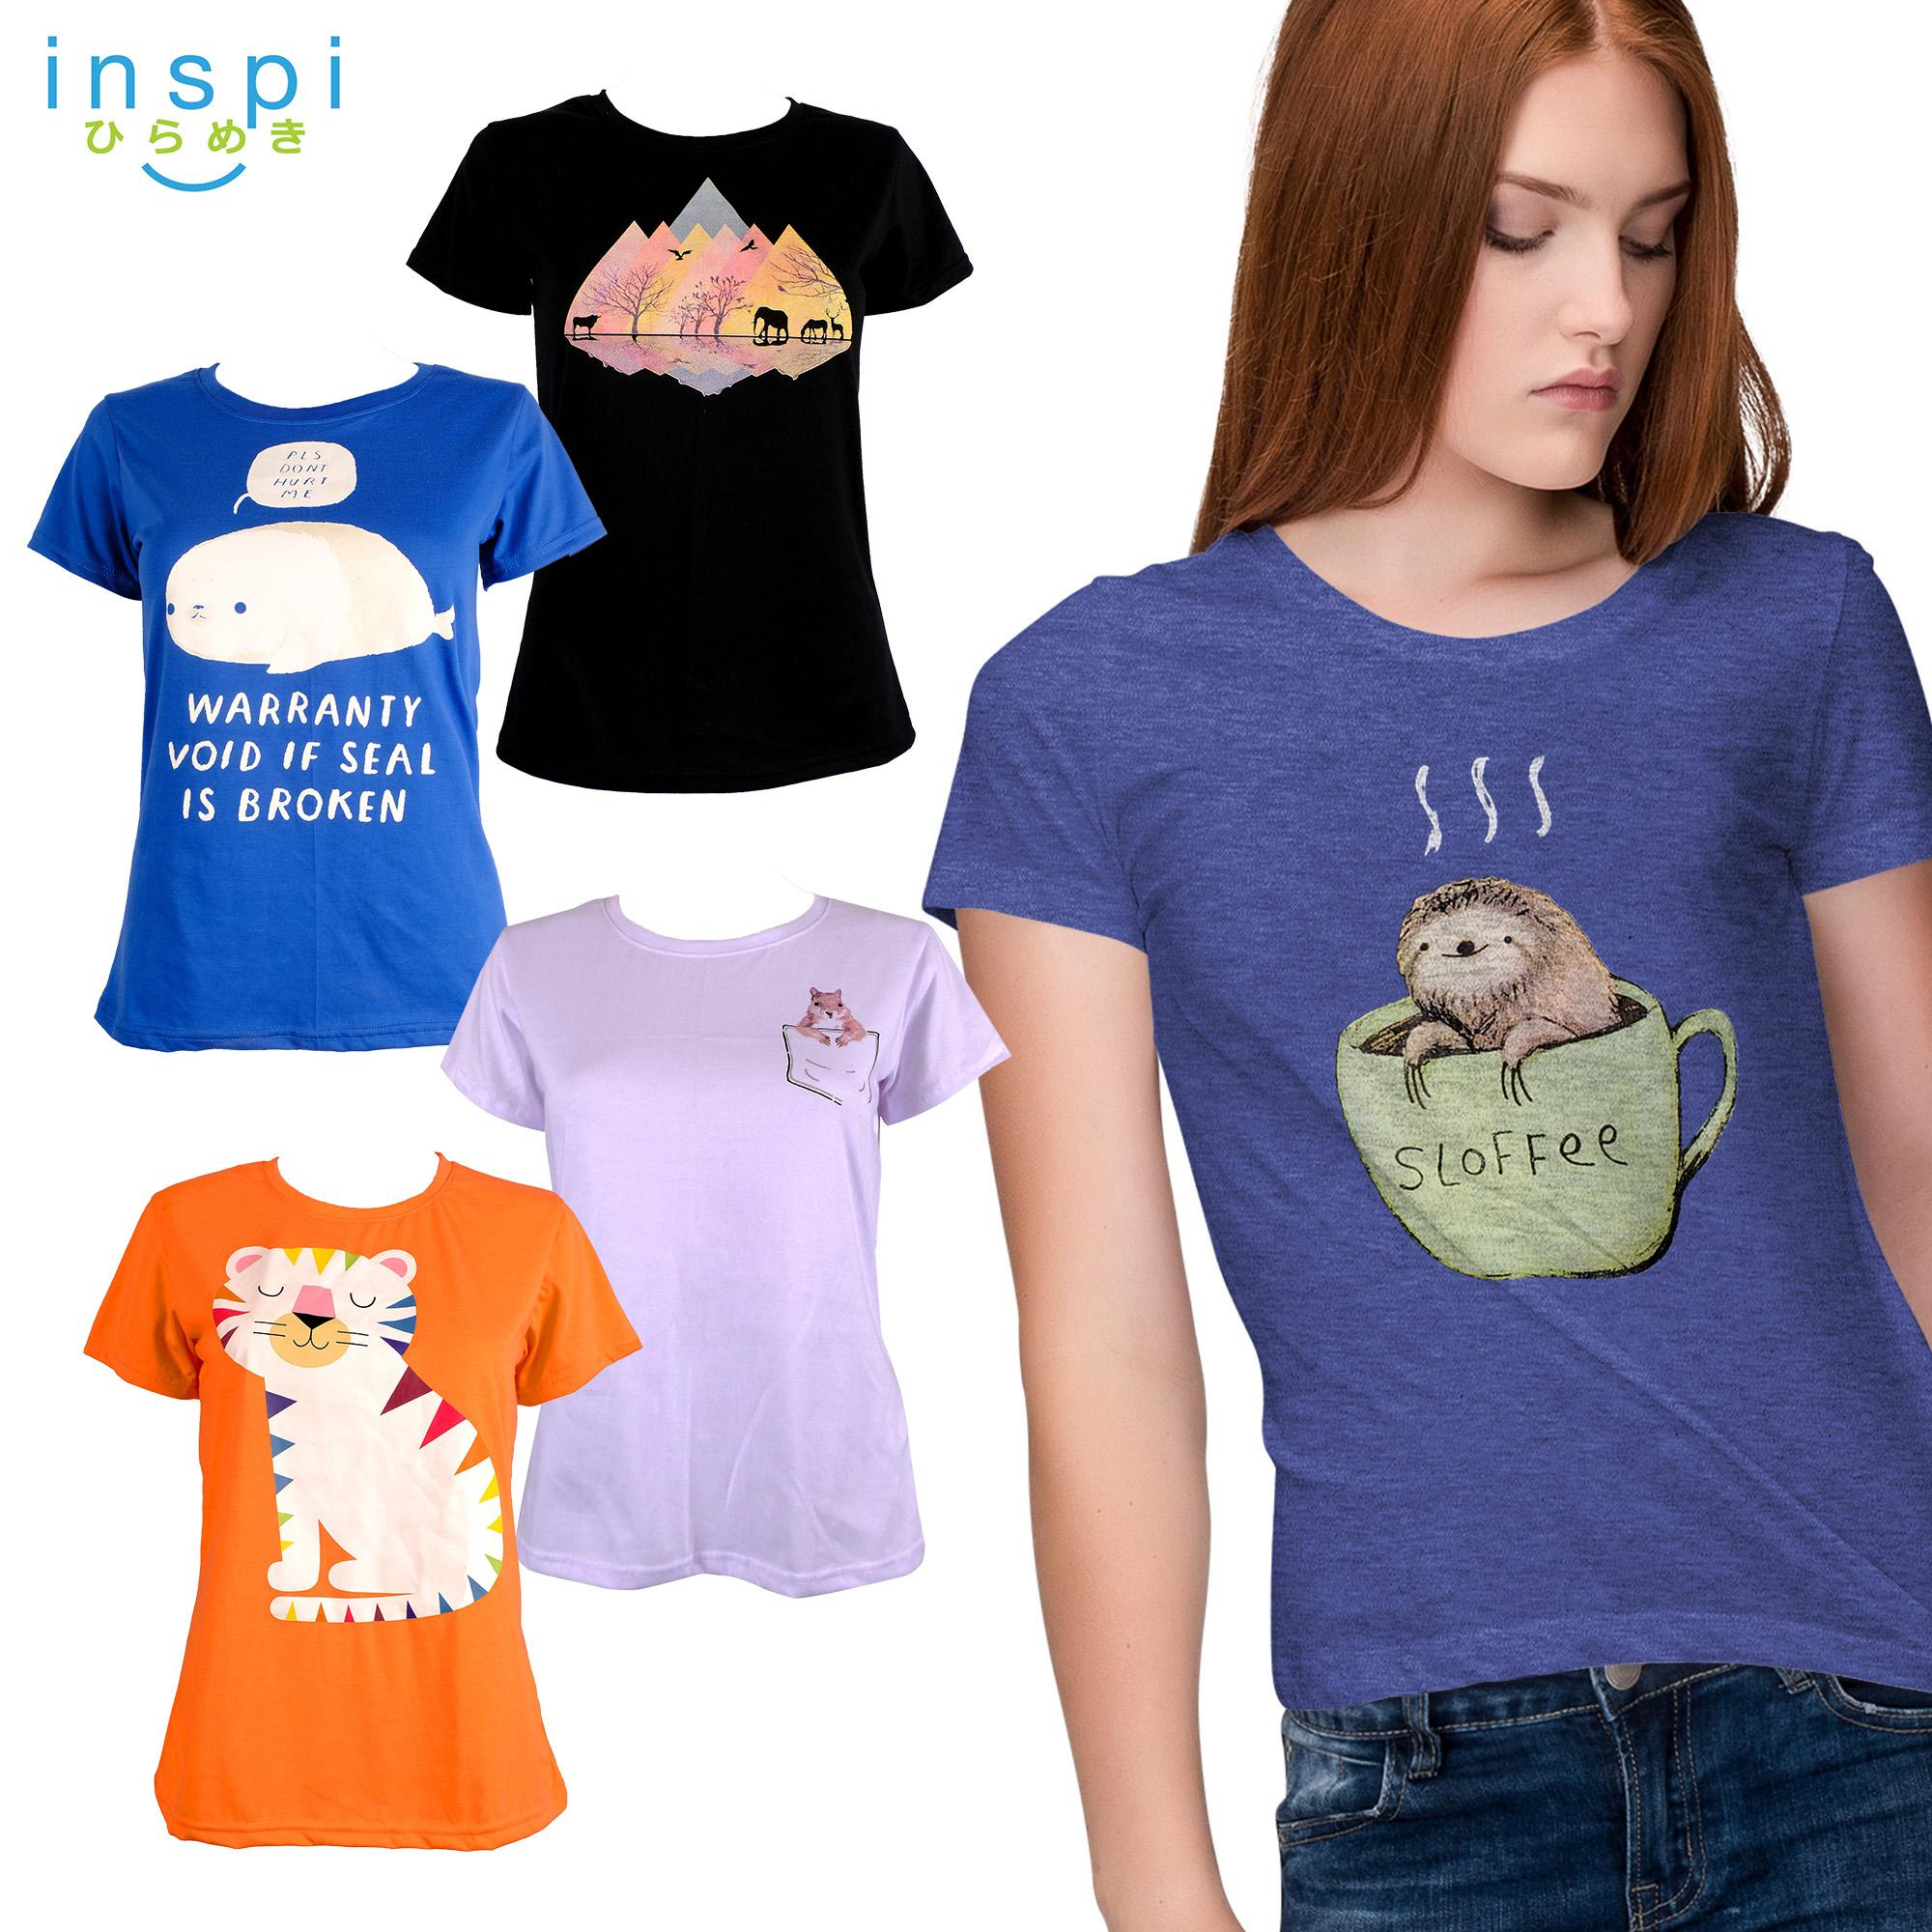 eb15d5acb58 INSPI Tees Ladies Pet Collection tshirt printed graphic tee Ladies t shirt  shirts women tshirts for